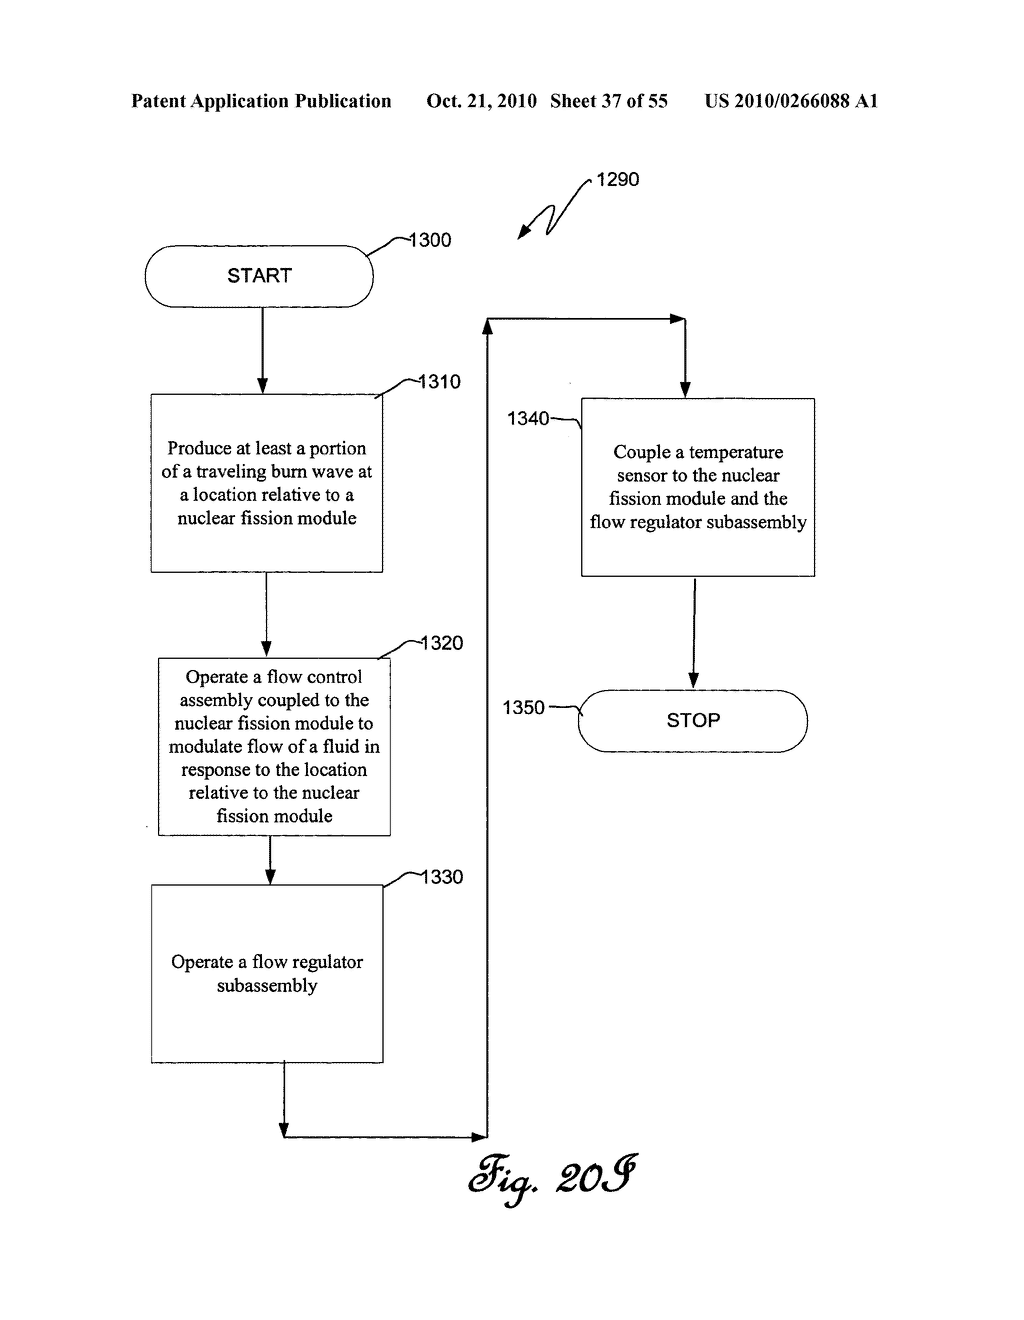 Nuclear fission reactor, flow control assembly, methods therefor and a flow control assembly system - diagram, schematic, and image 38